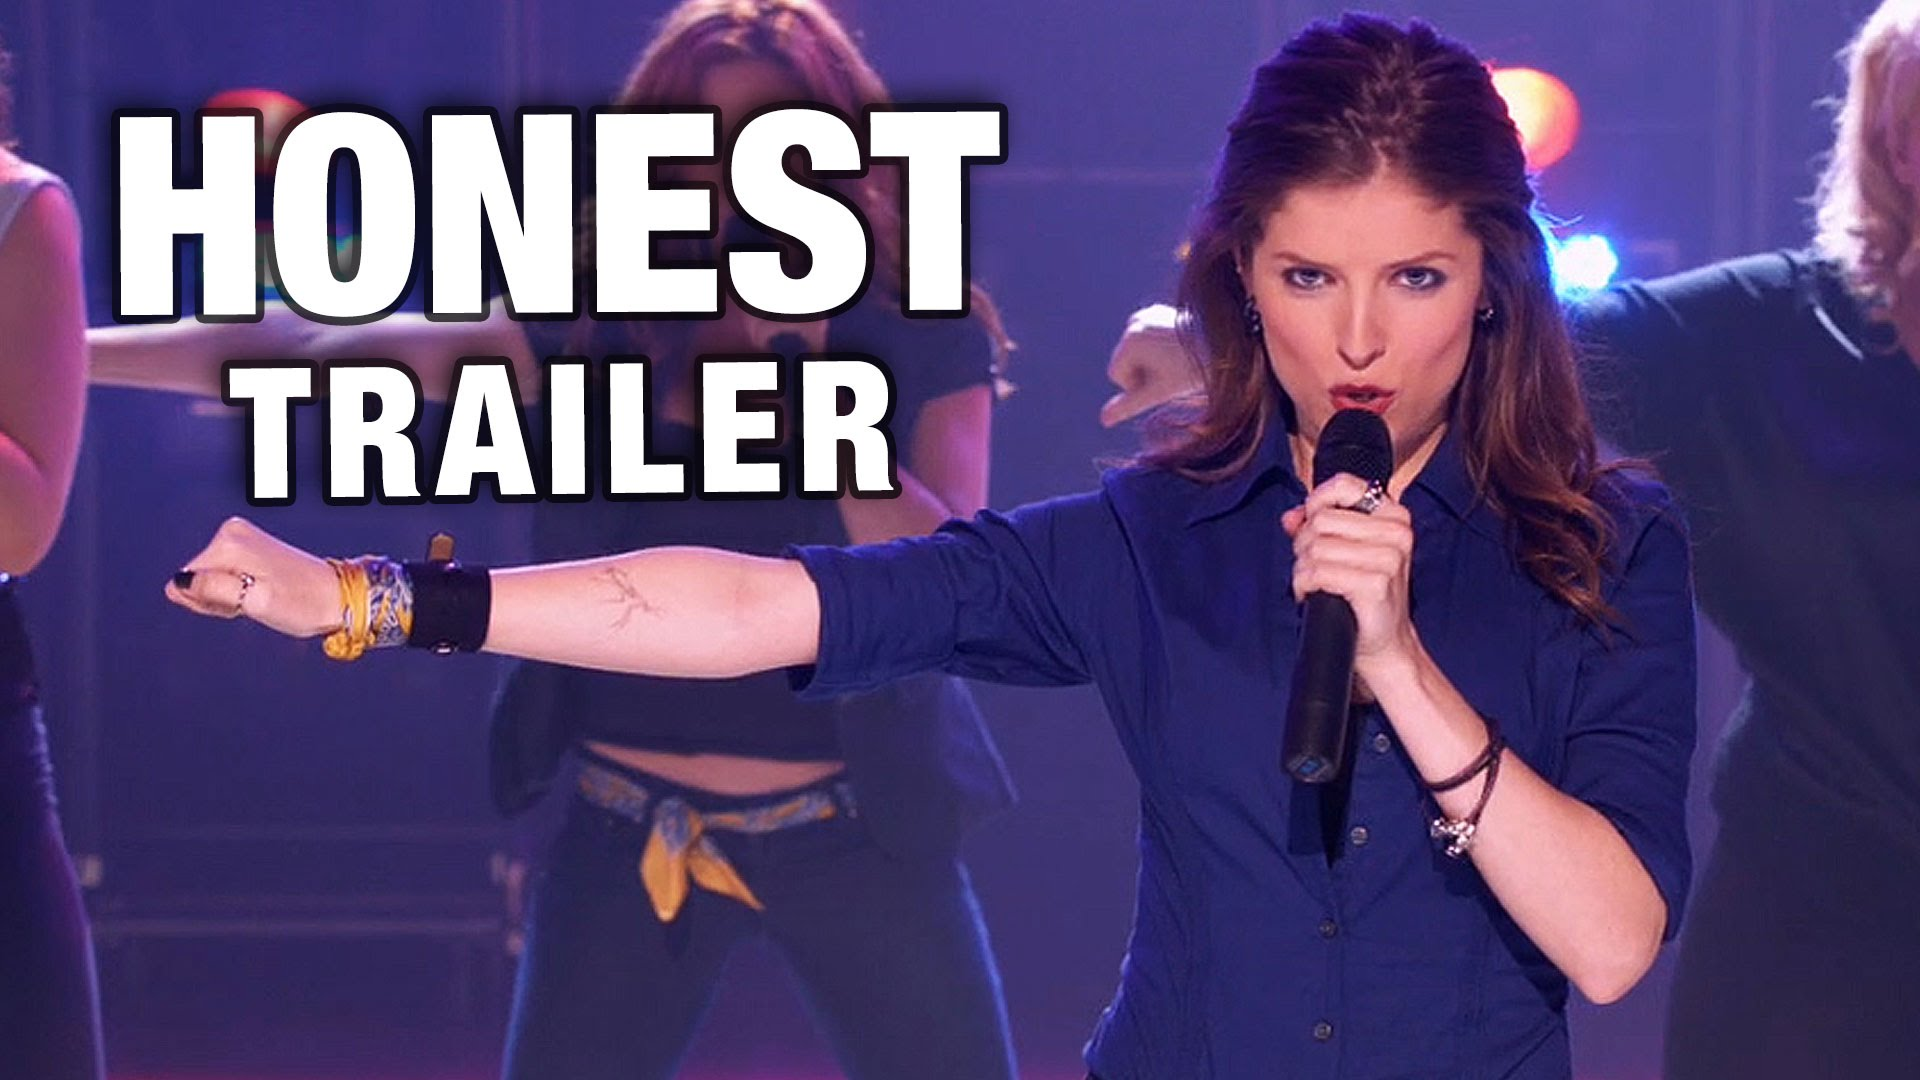 Honest Trailers Tells the truth about Pitch Perfect